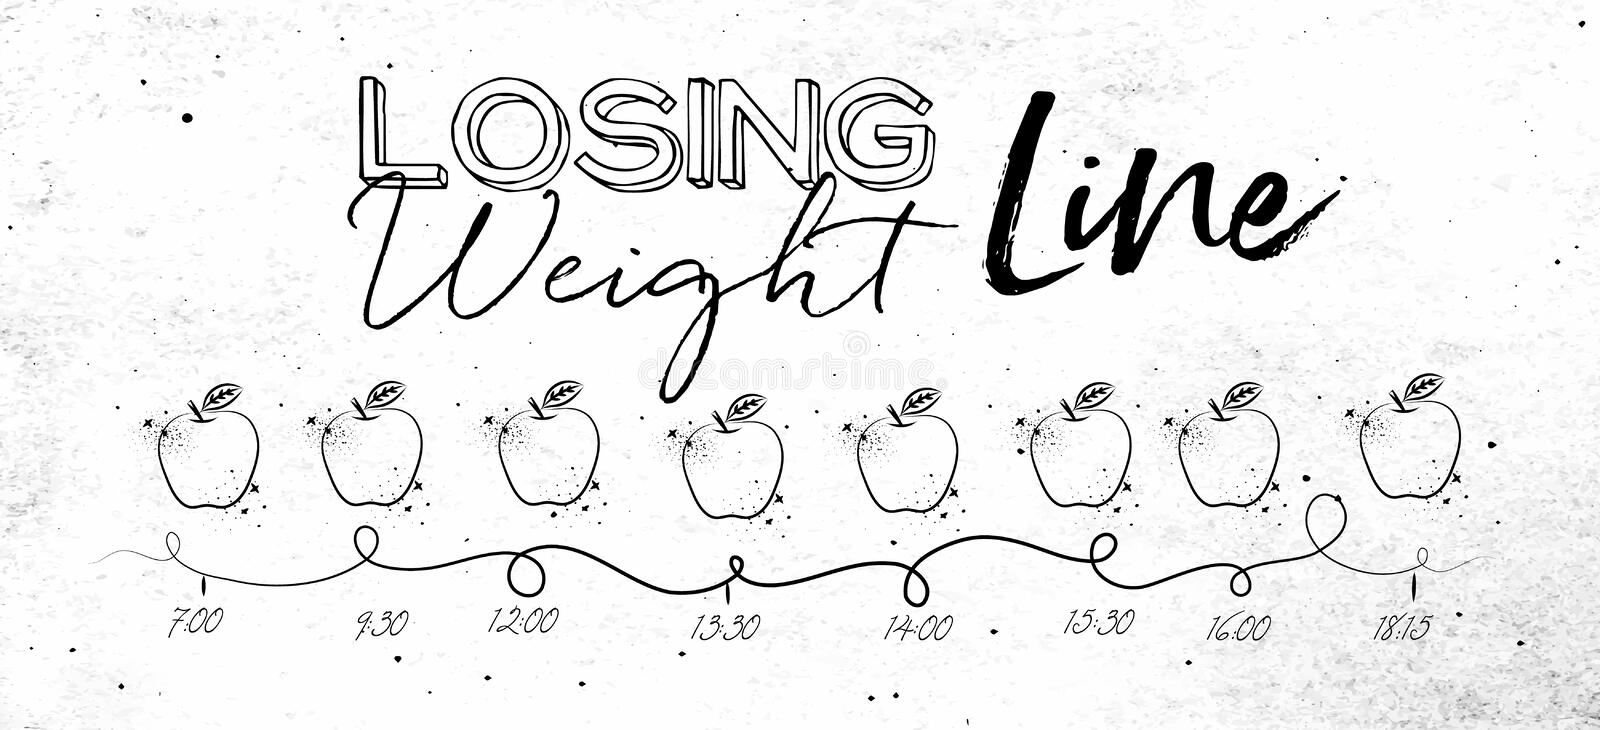 Losing weight timeline vector illustration